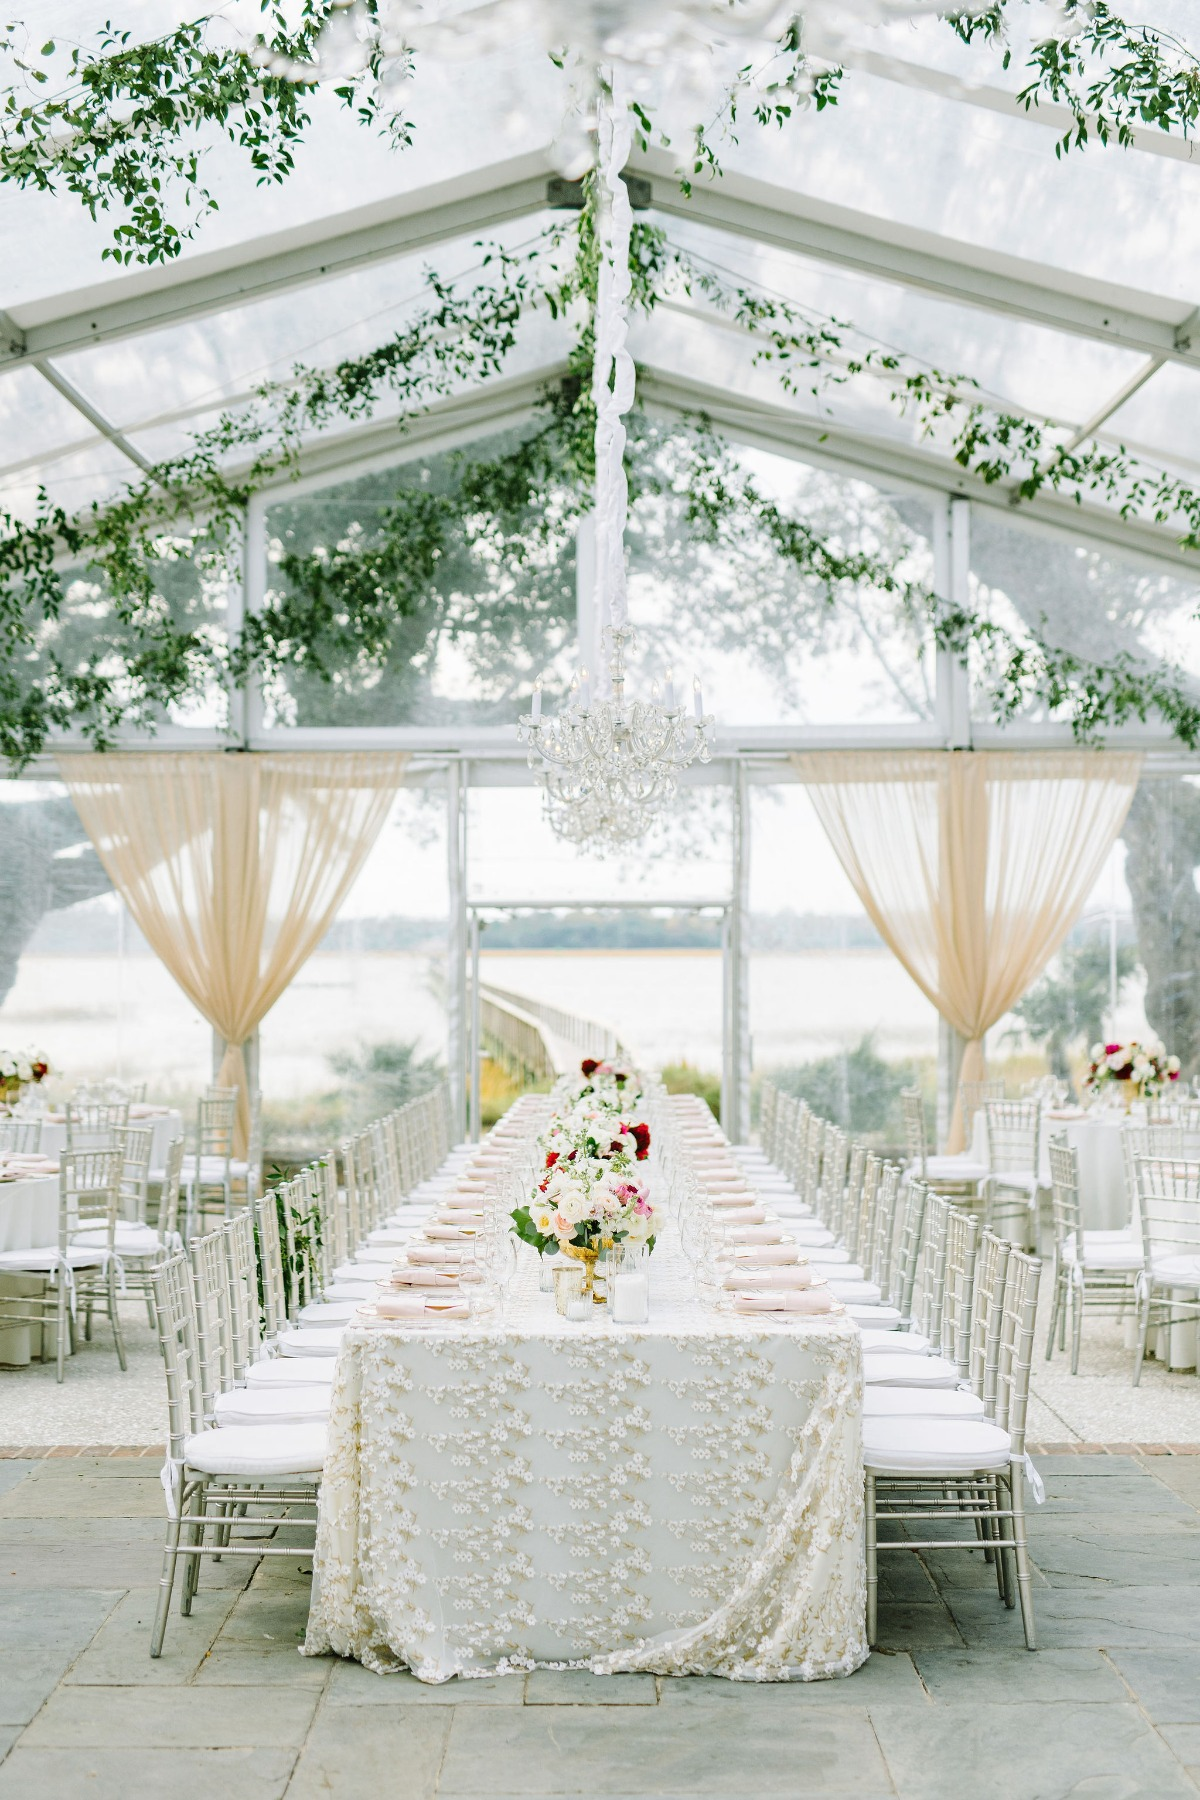 elegant tent wedding reception designed by Pure Luxe Bride